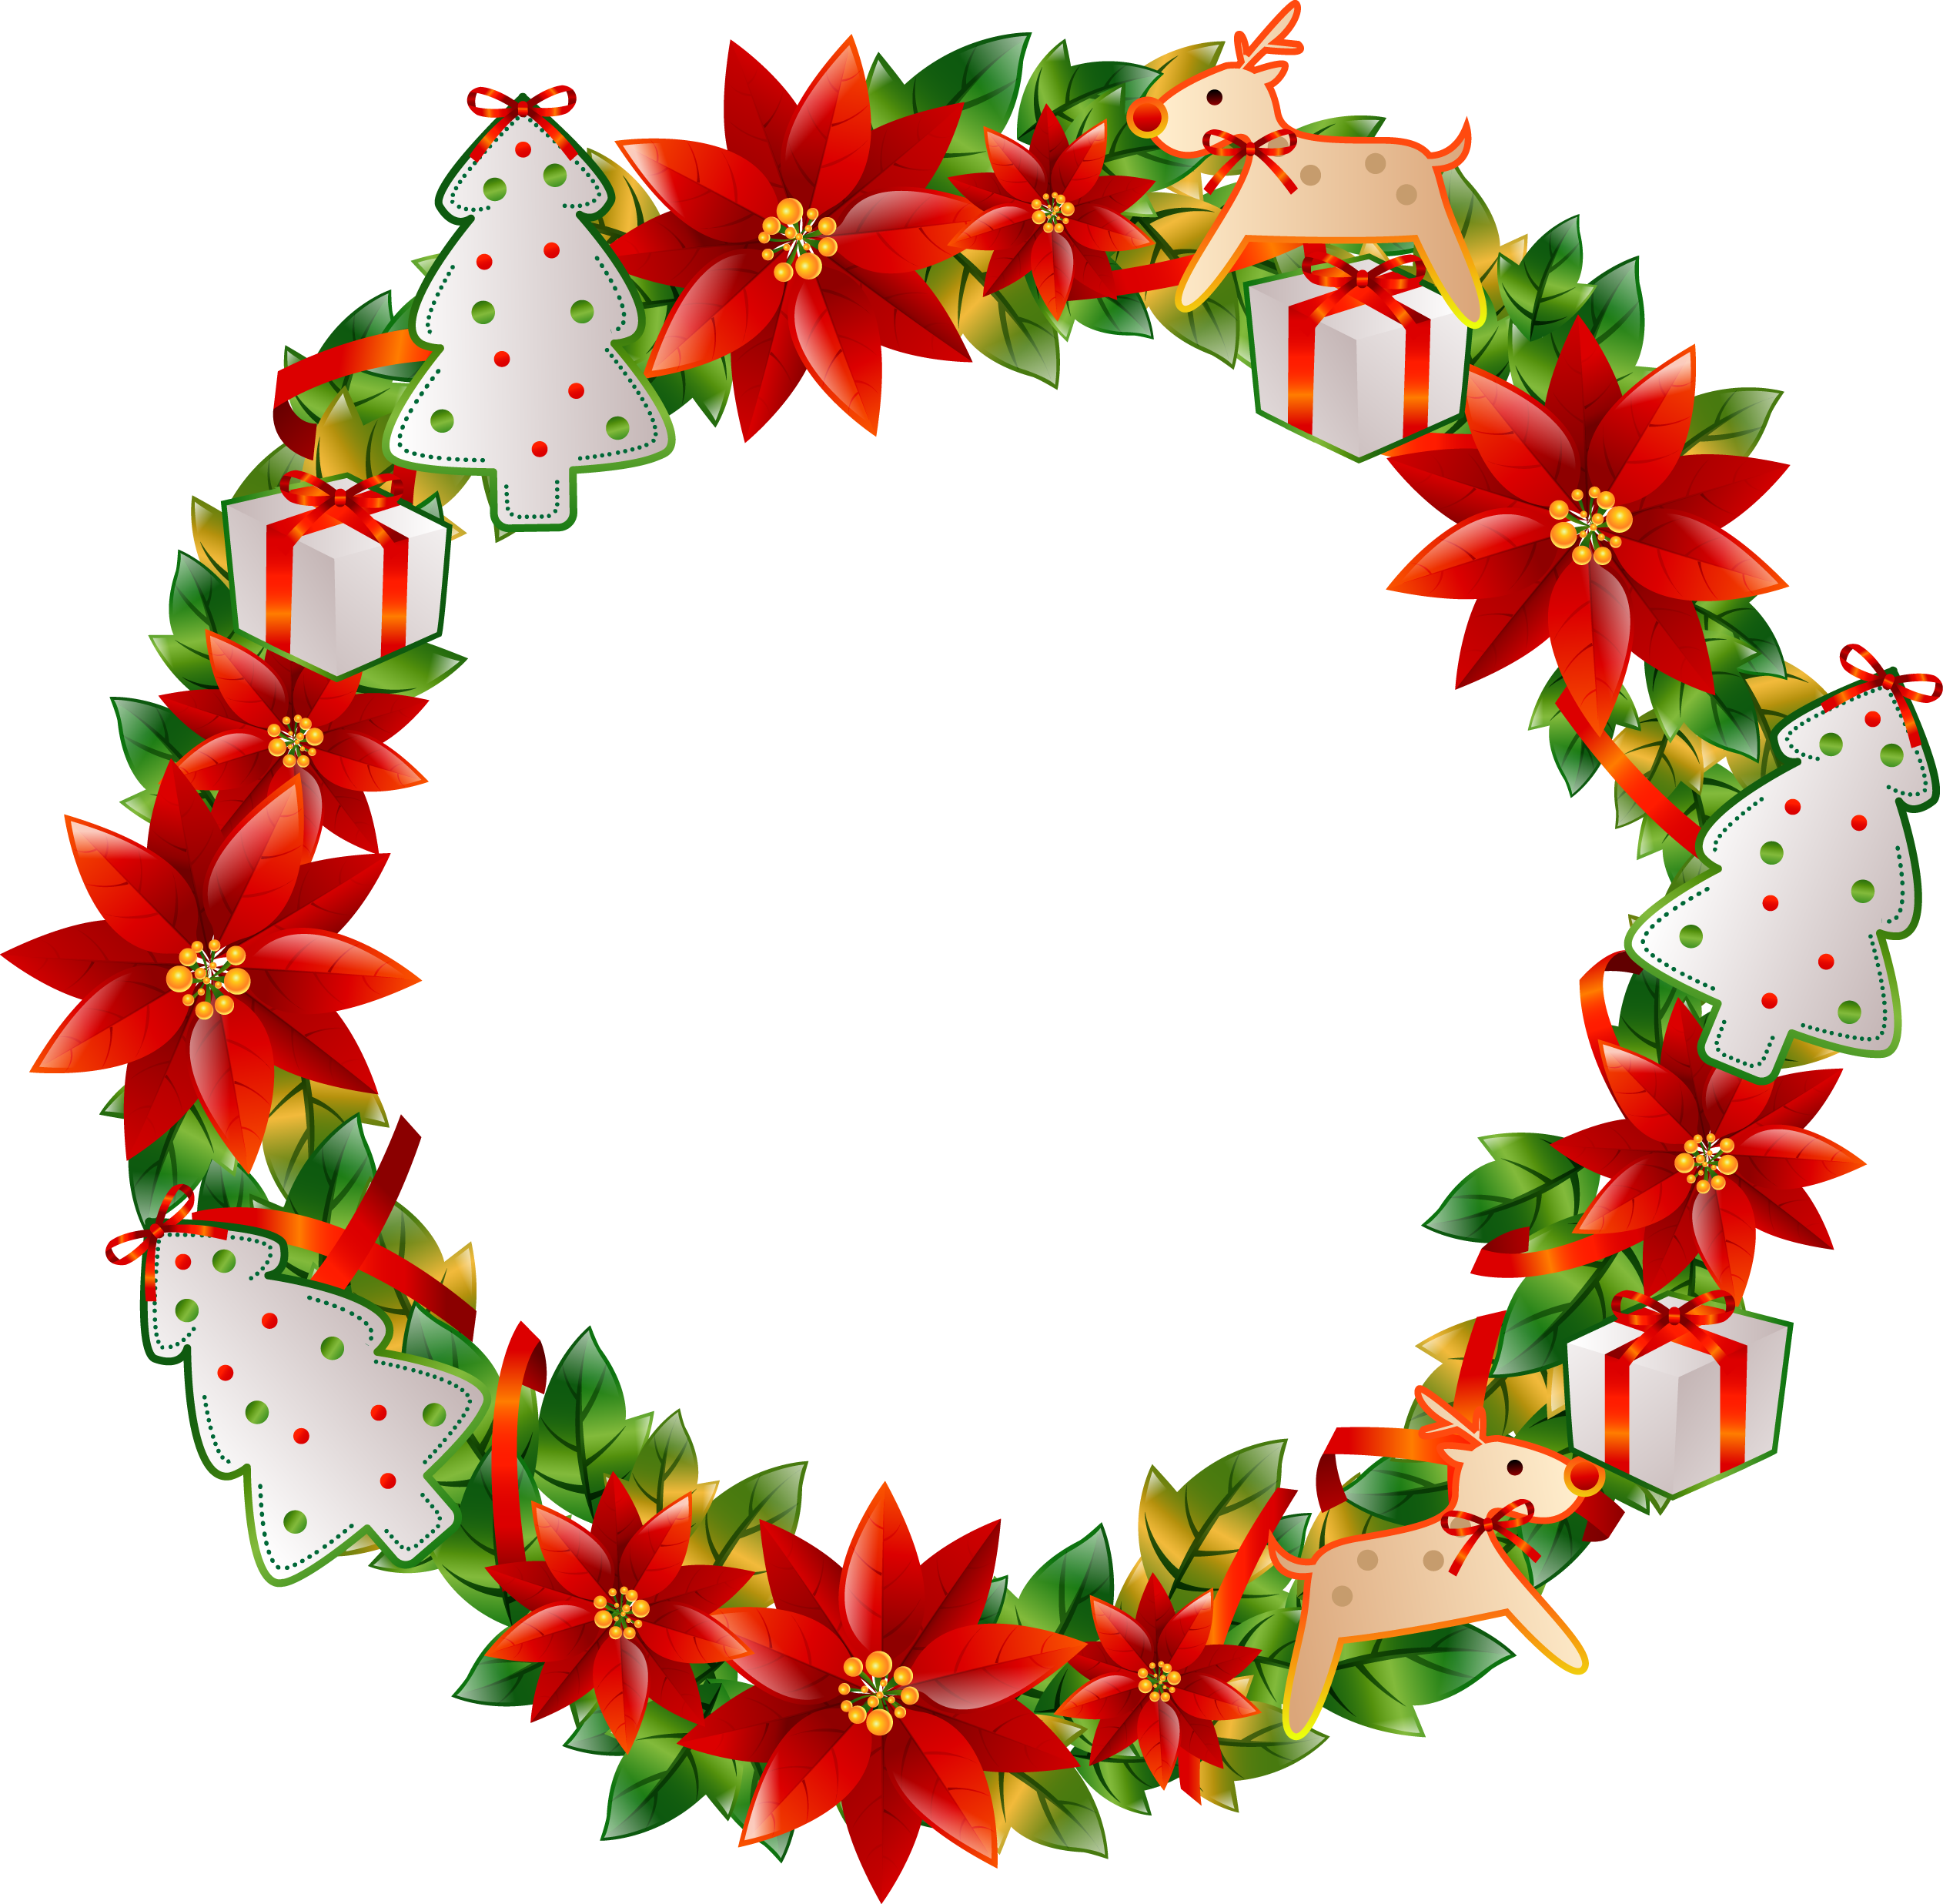 Christmas wreath transprent free. Flower circle png